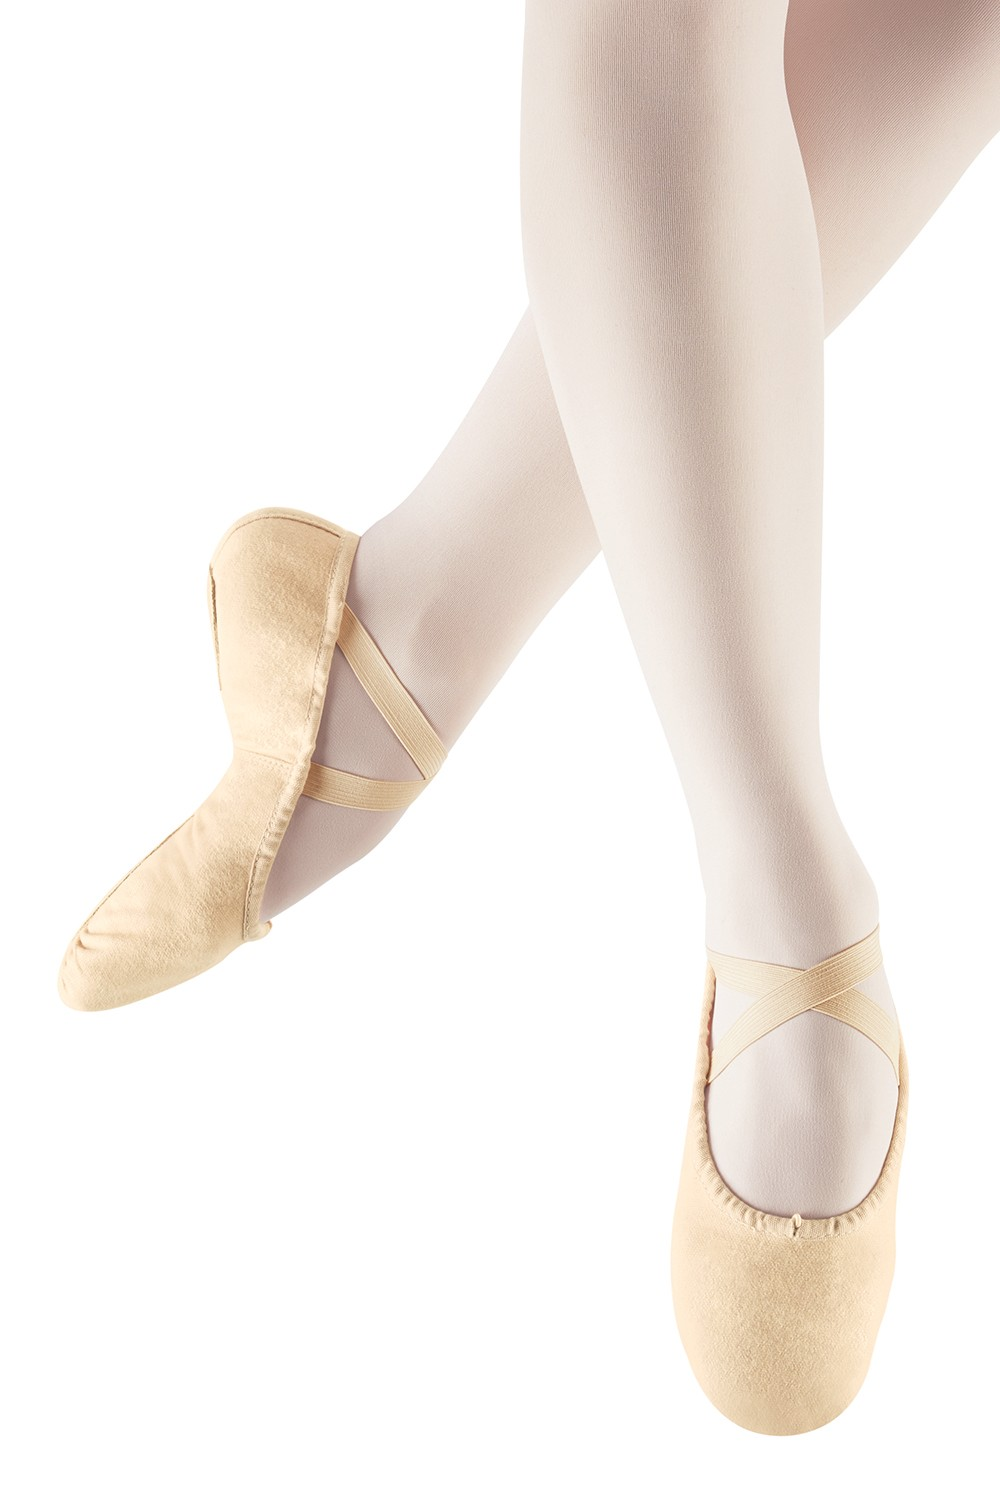 Company Girl's Ballet Shoes